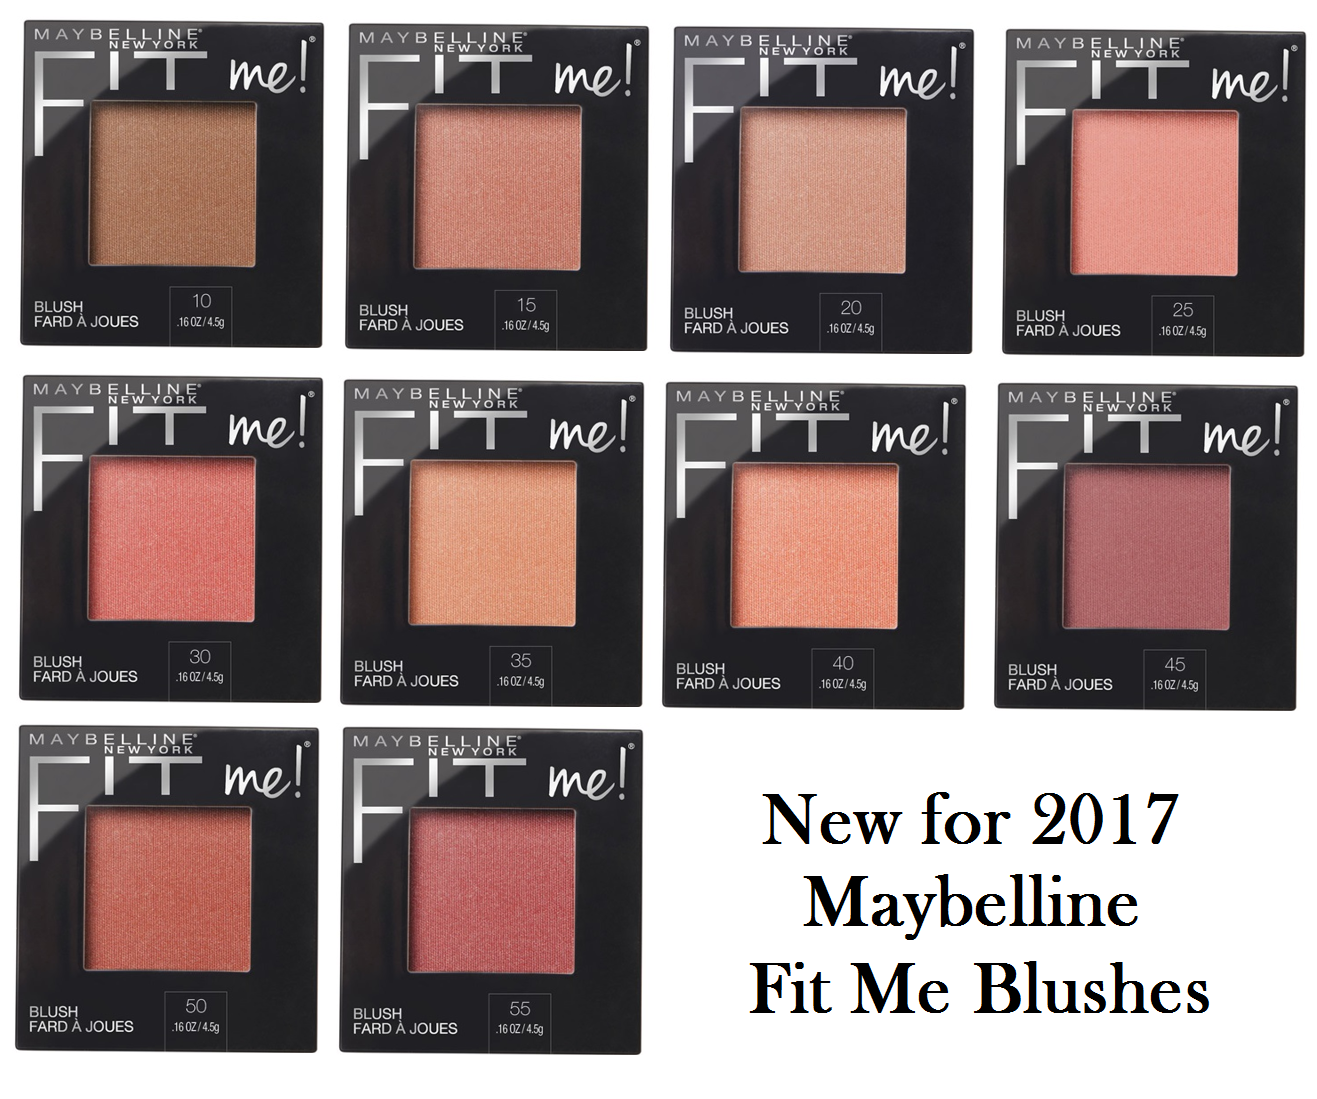 Maybelline fit me blush 2017